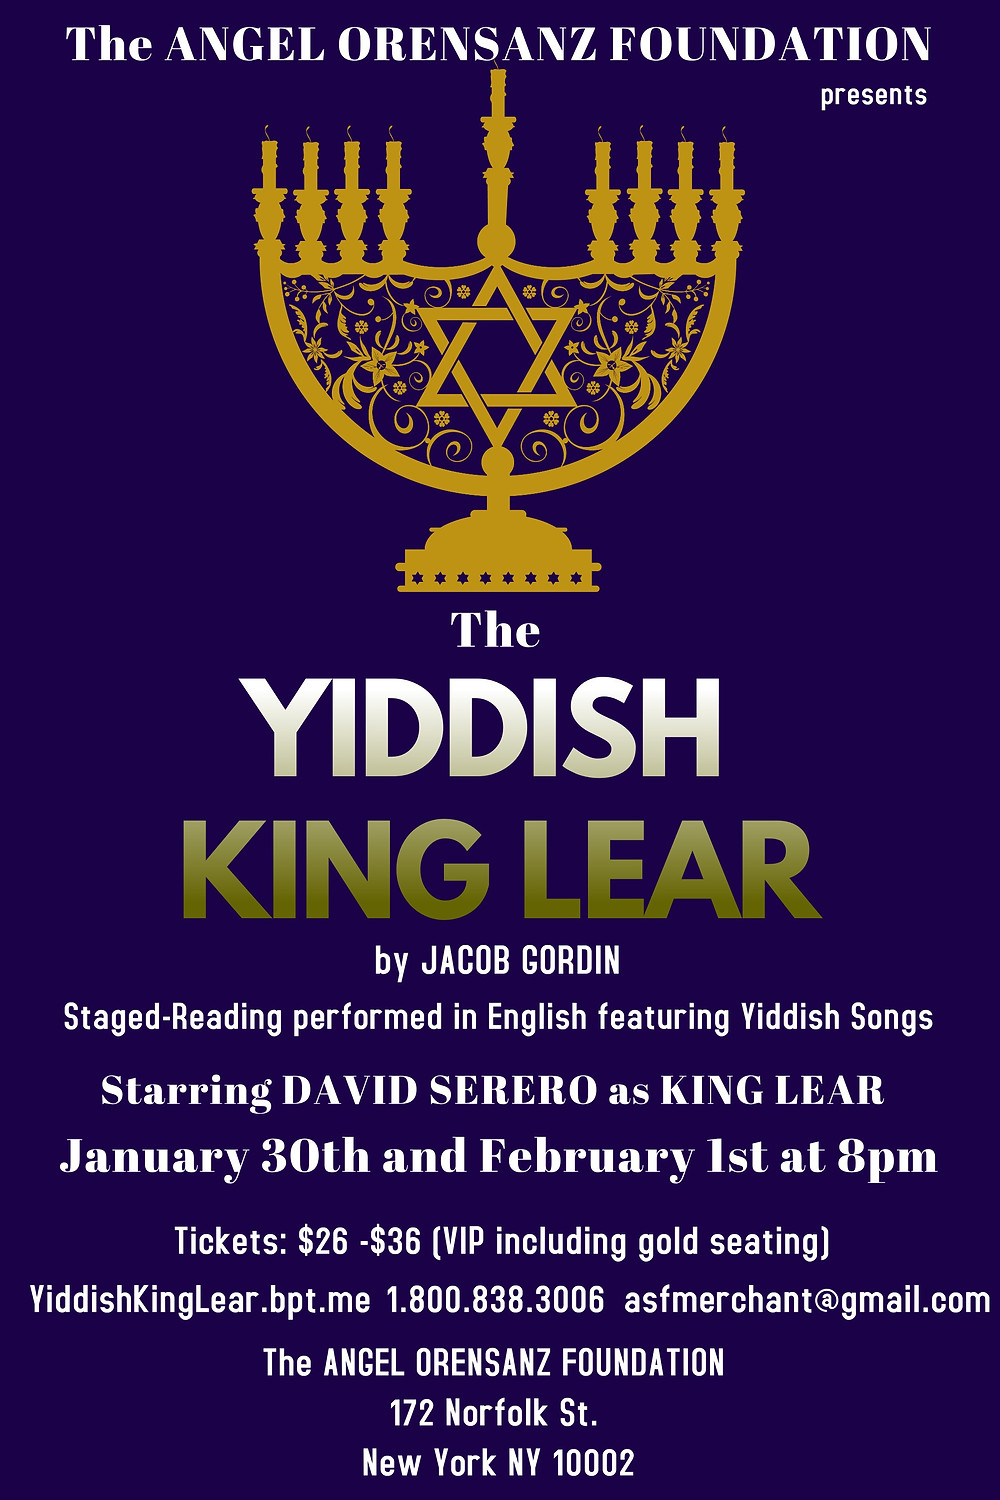 The Yiddish King Lear (Jewish King Lear) by Jacob Gordin - Starring David Serero as Lear